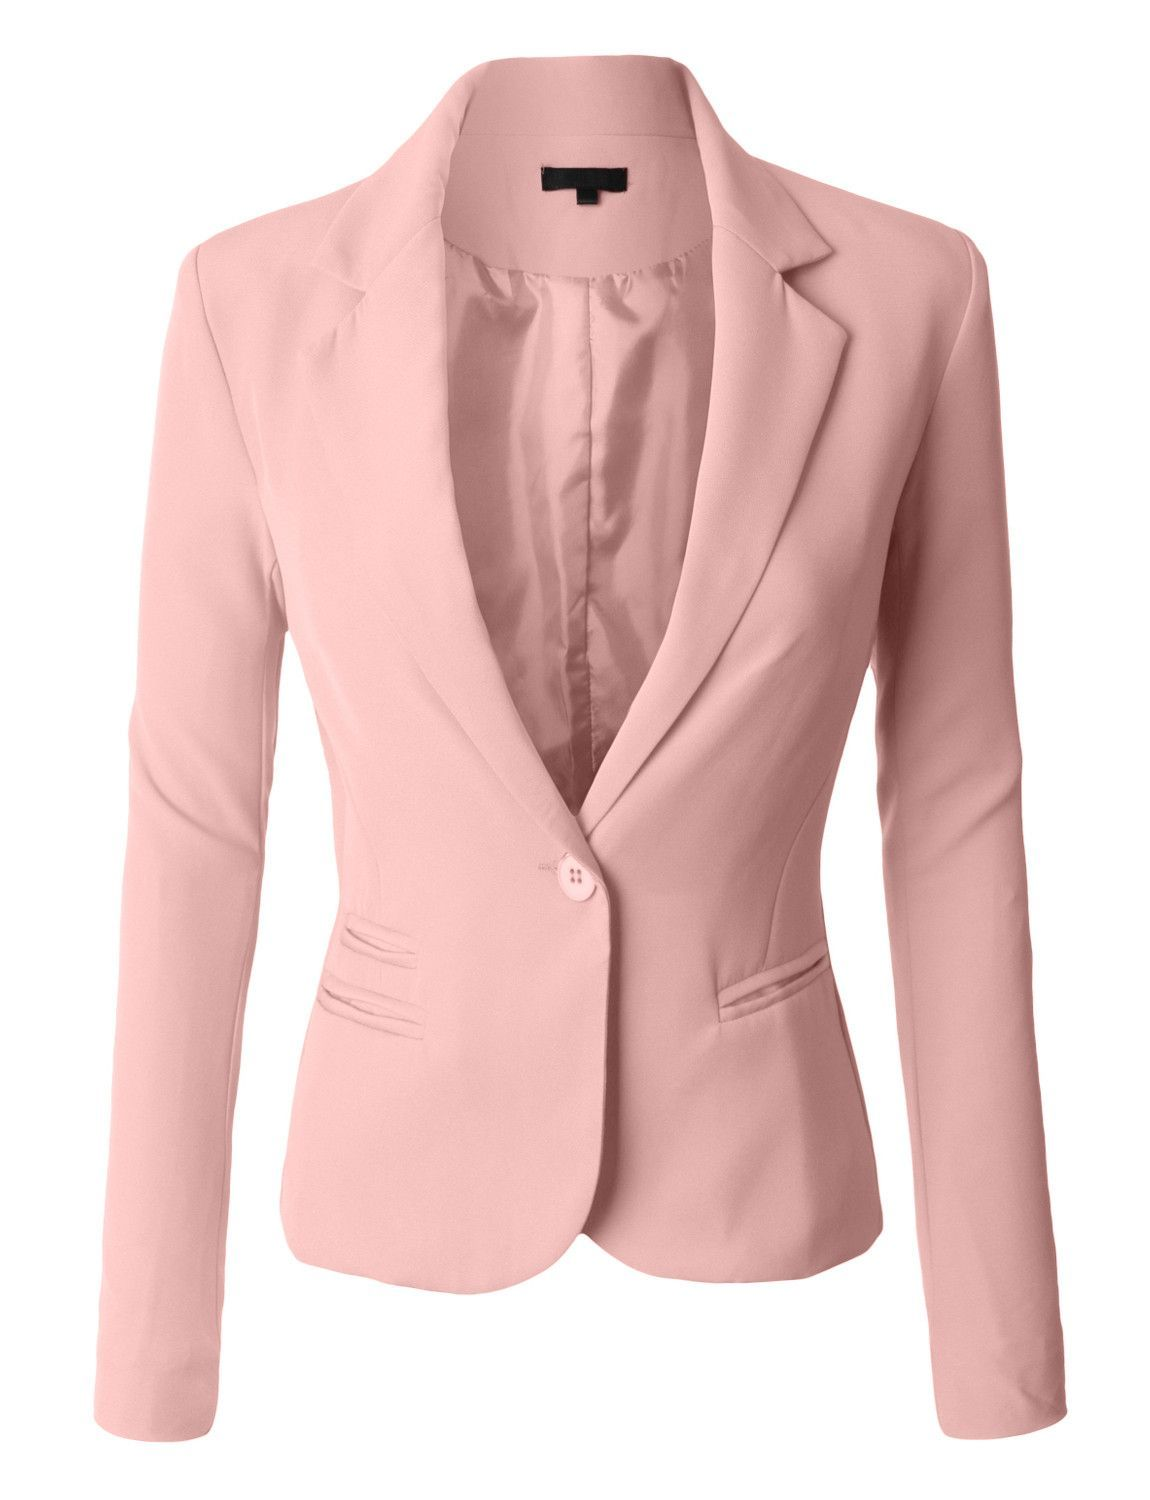 Womens Classic Fitted Boyfriend Blazer Jacket | Pinterest ...